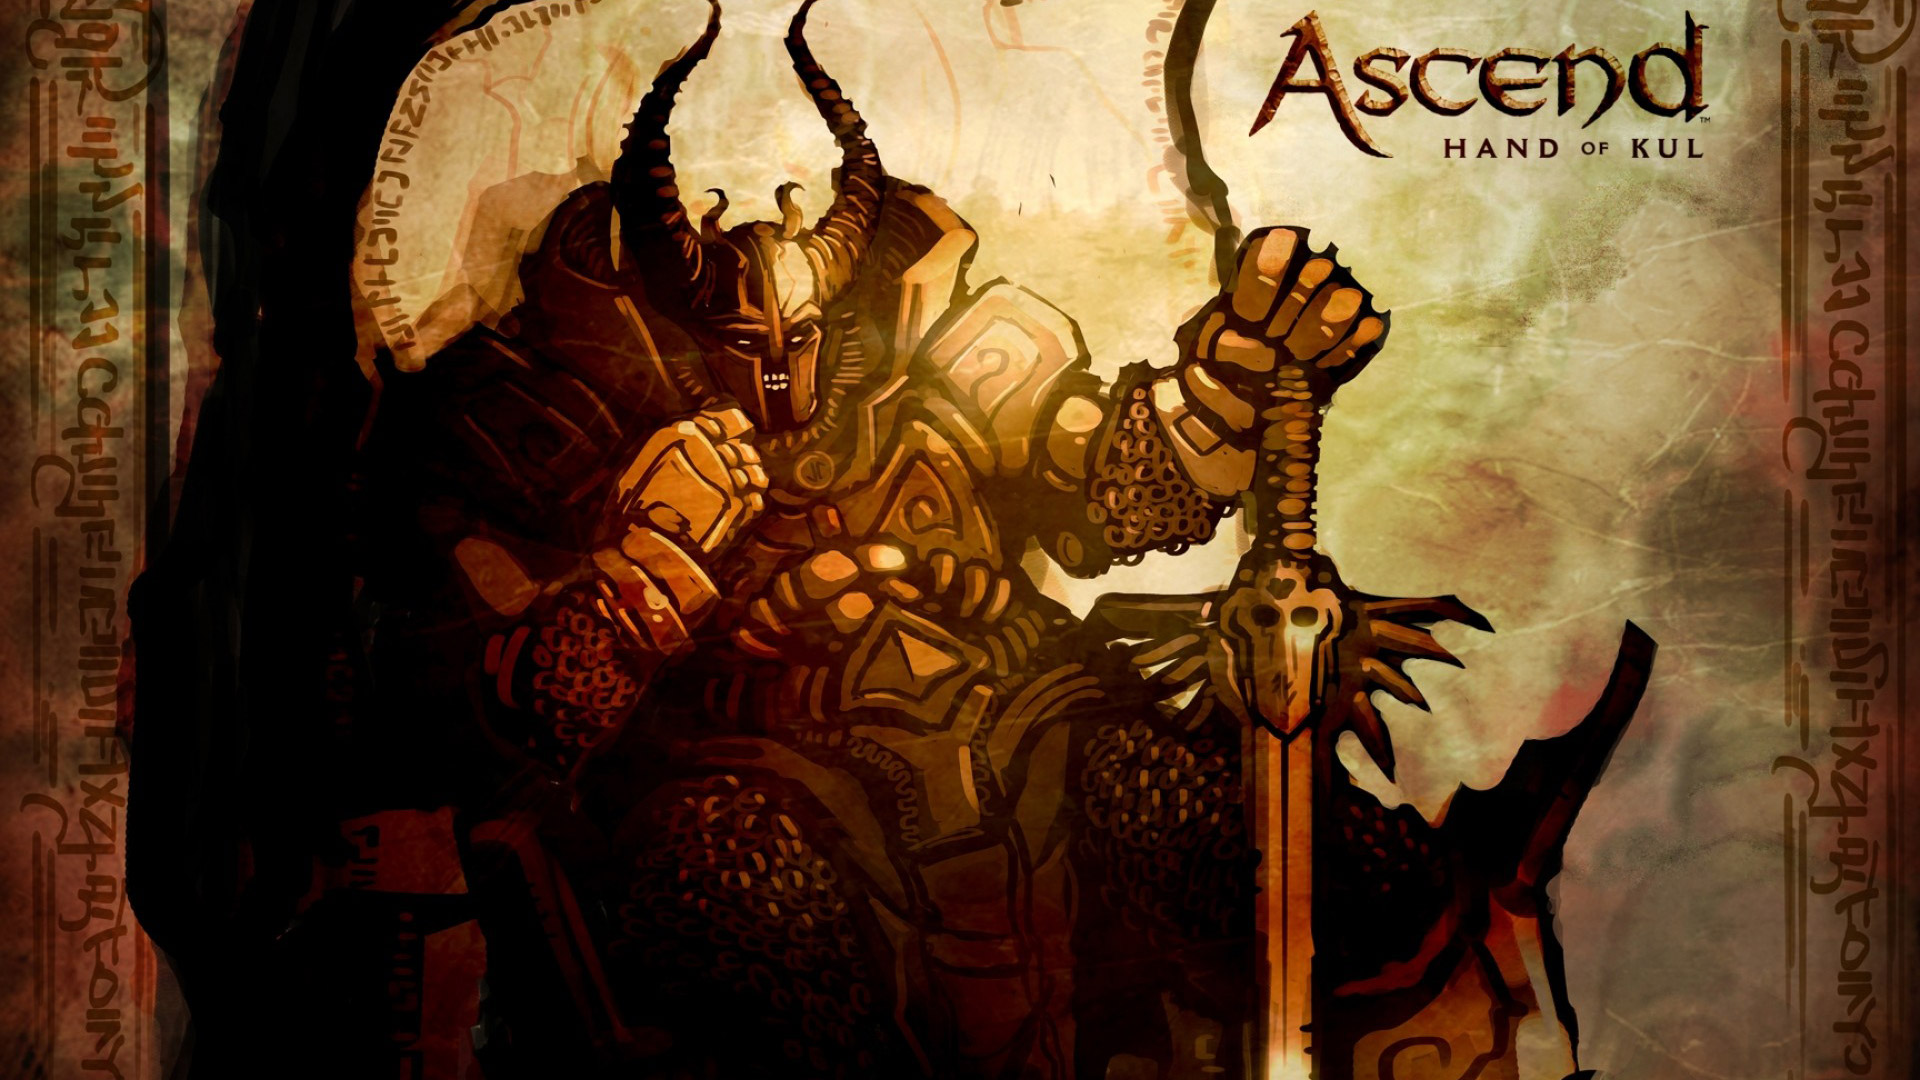 Ascend: Hand of Kul Wallpaper in 1920x1080